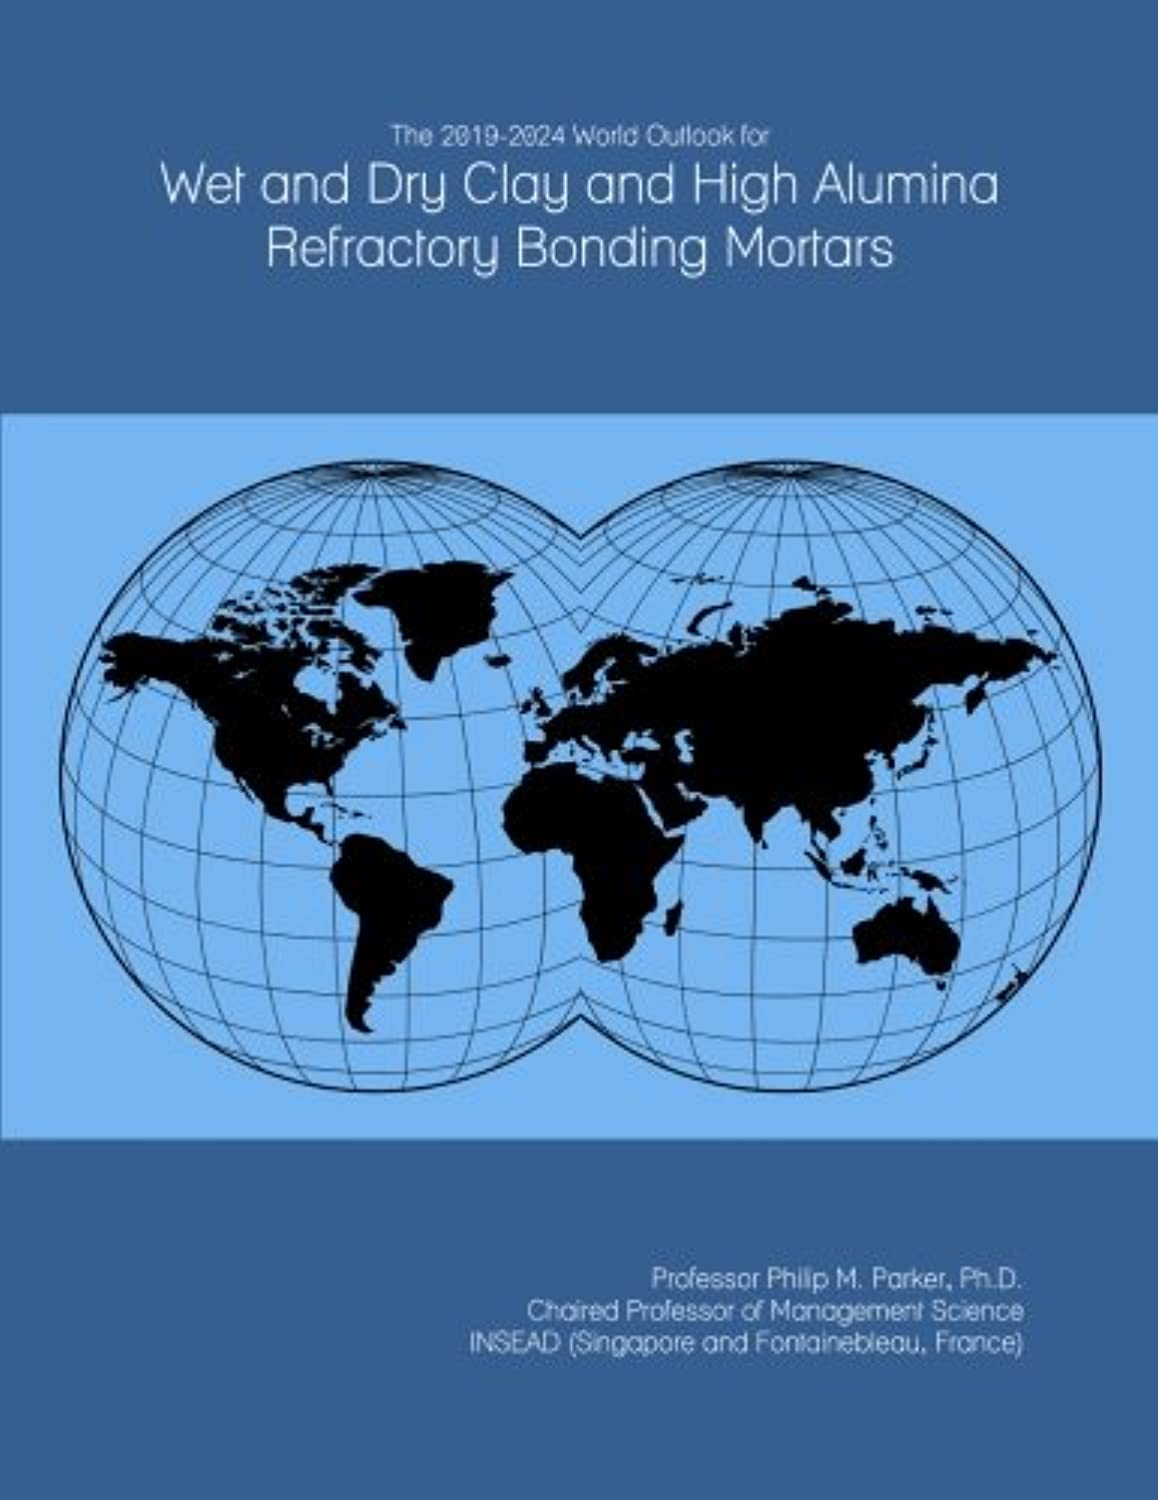 The 2019-2024 World Outlook for Wet and Dry Clay and High Alumina Refractory Bonding Mortars